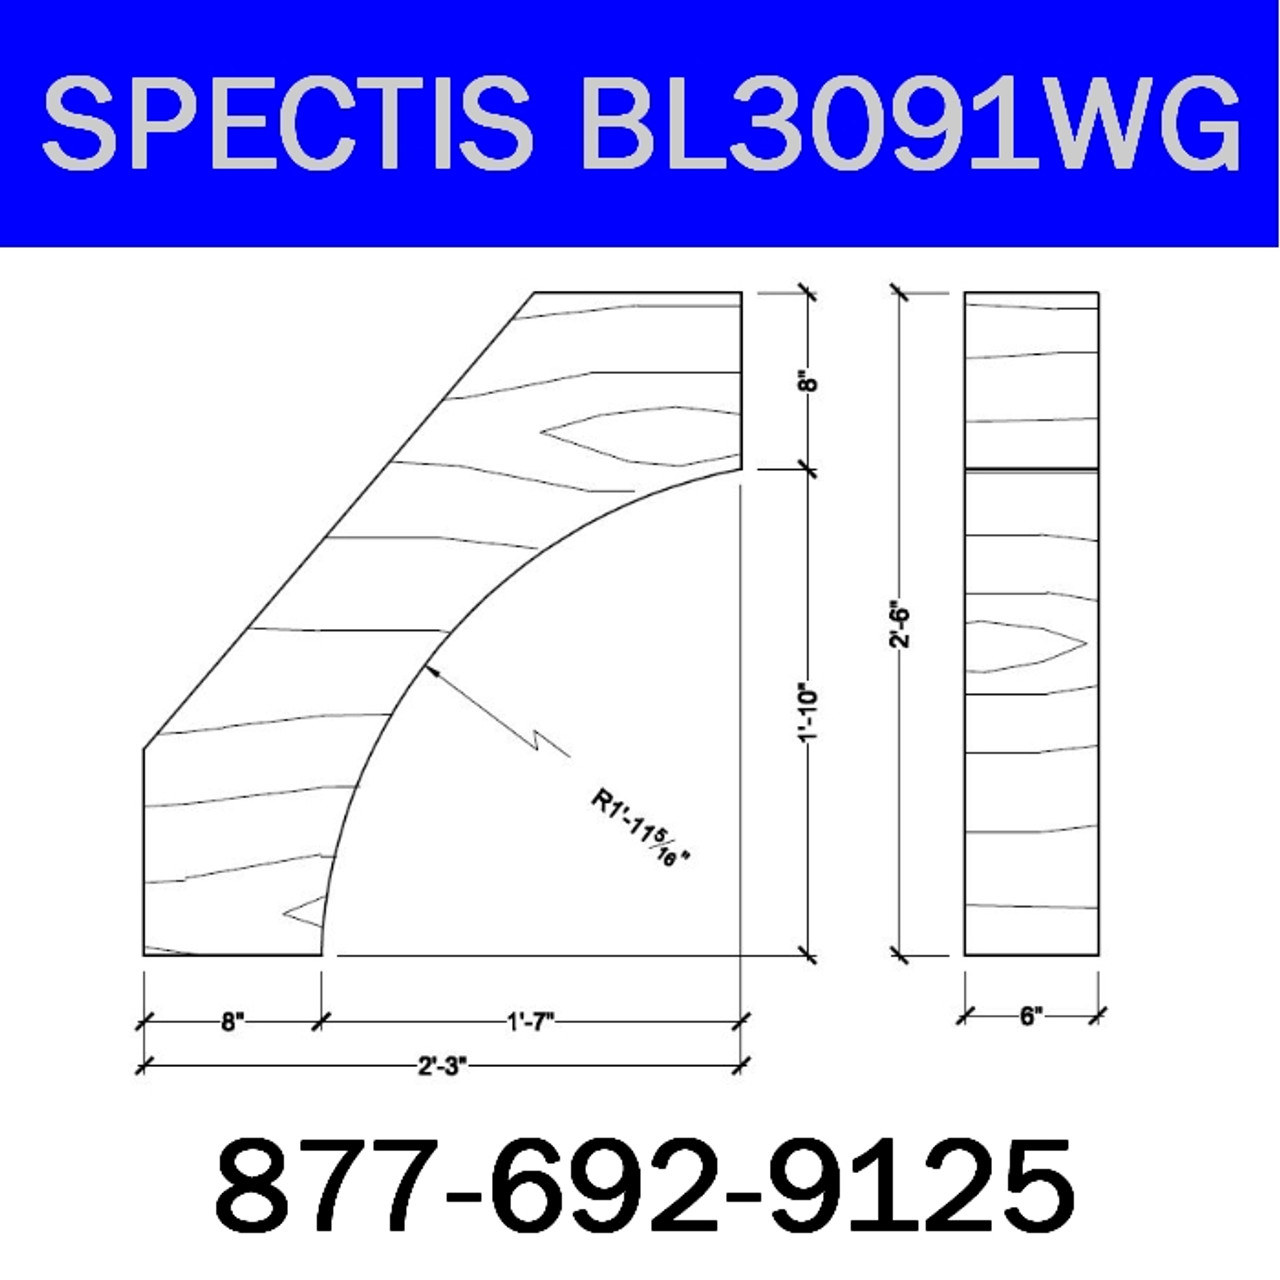 "BL3091WG Spectis Eave Block or Bracket 6""W x 32""H x 27"" Projection"